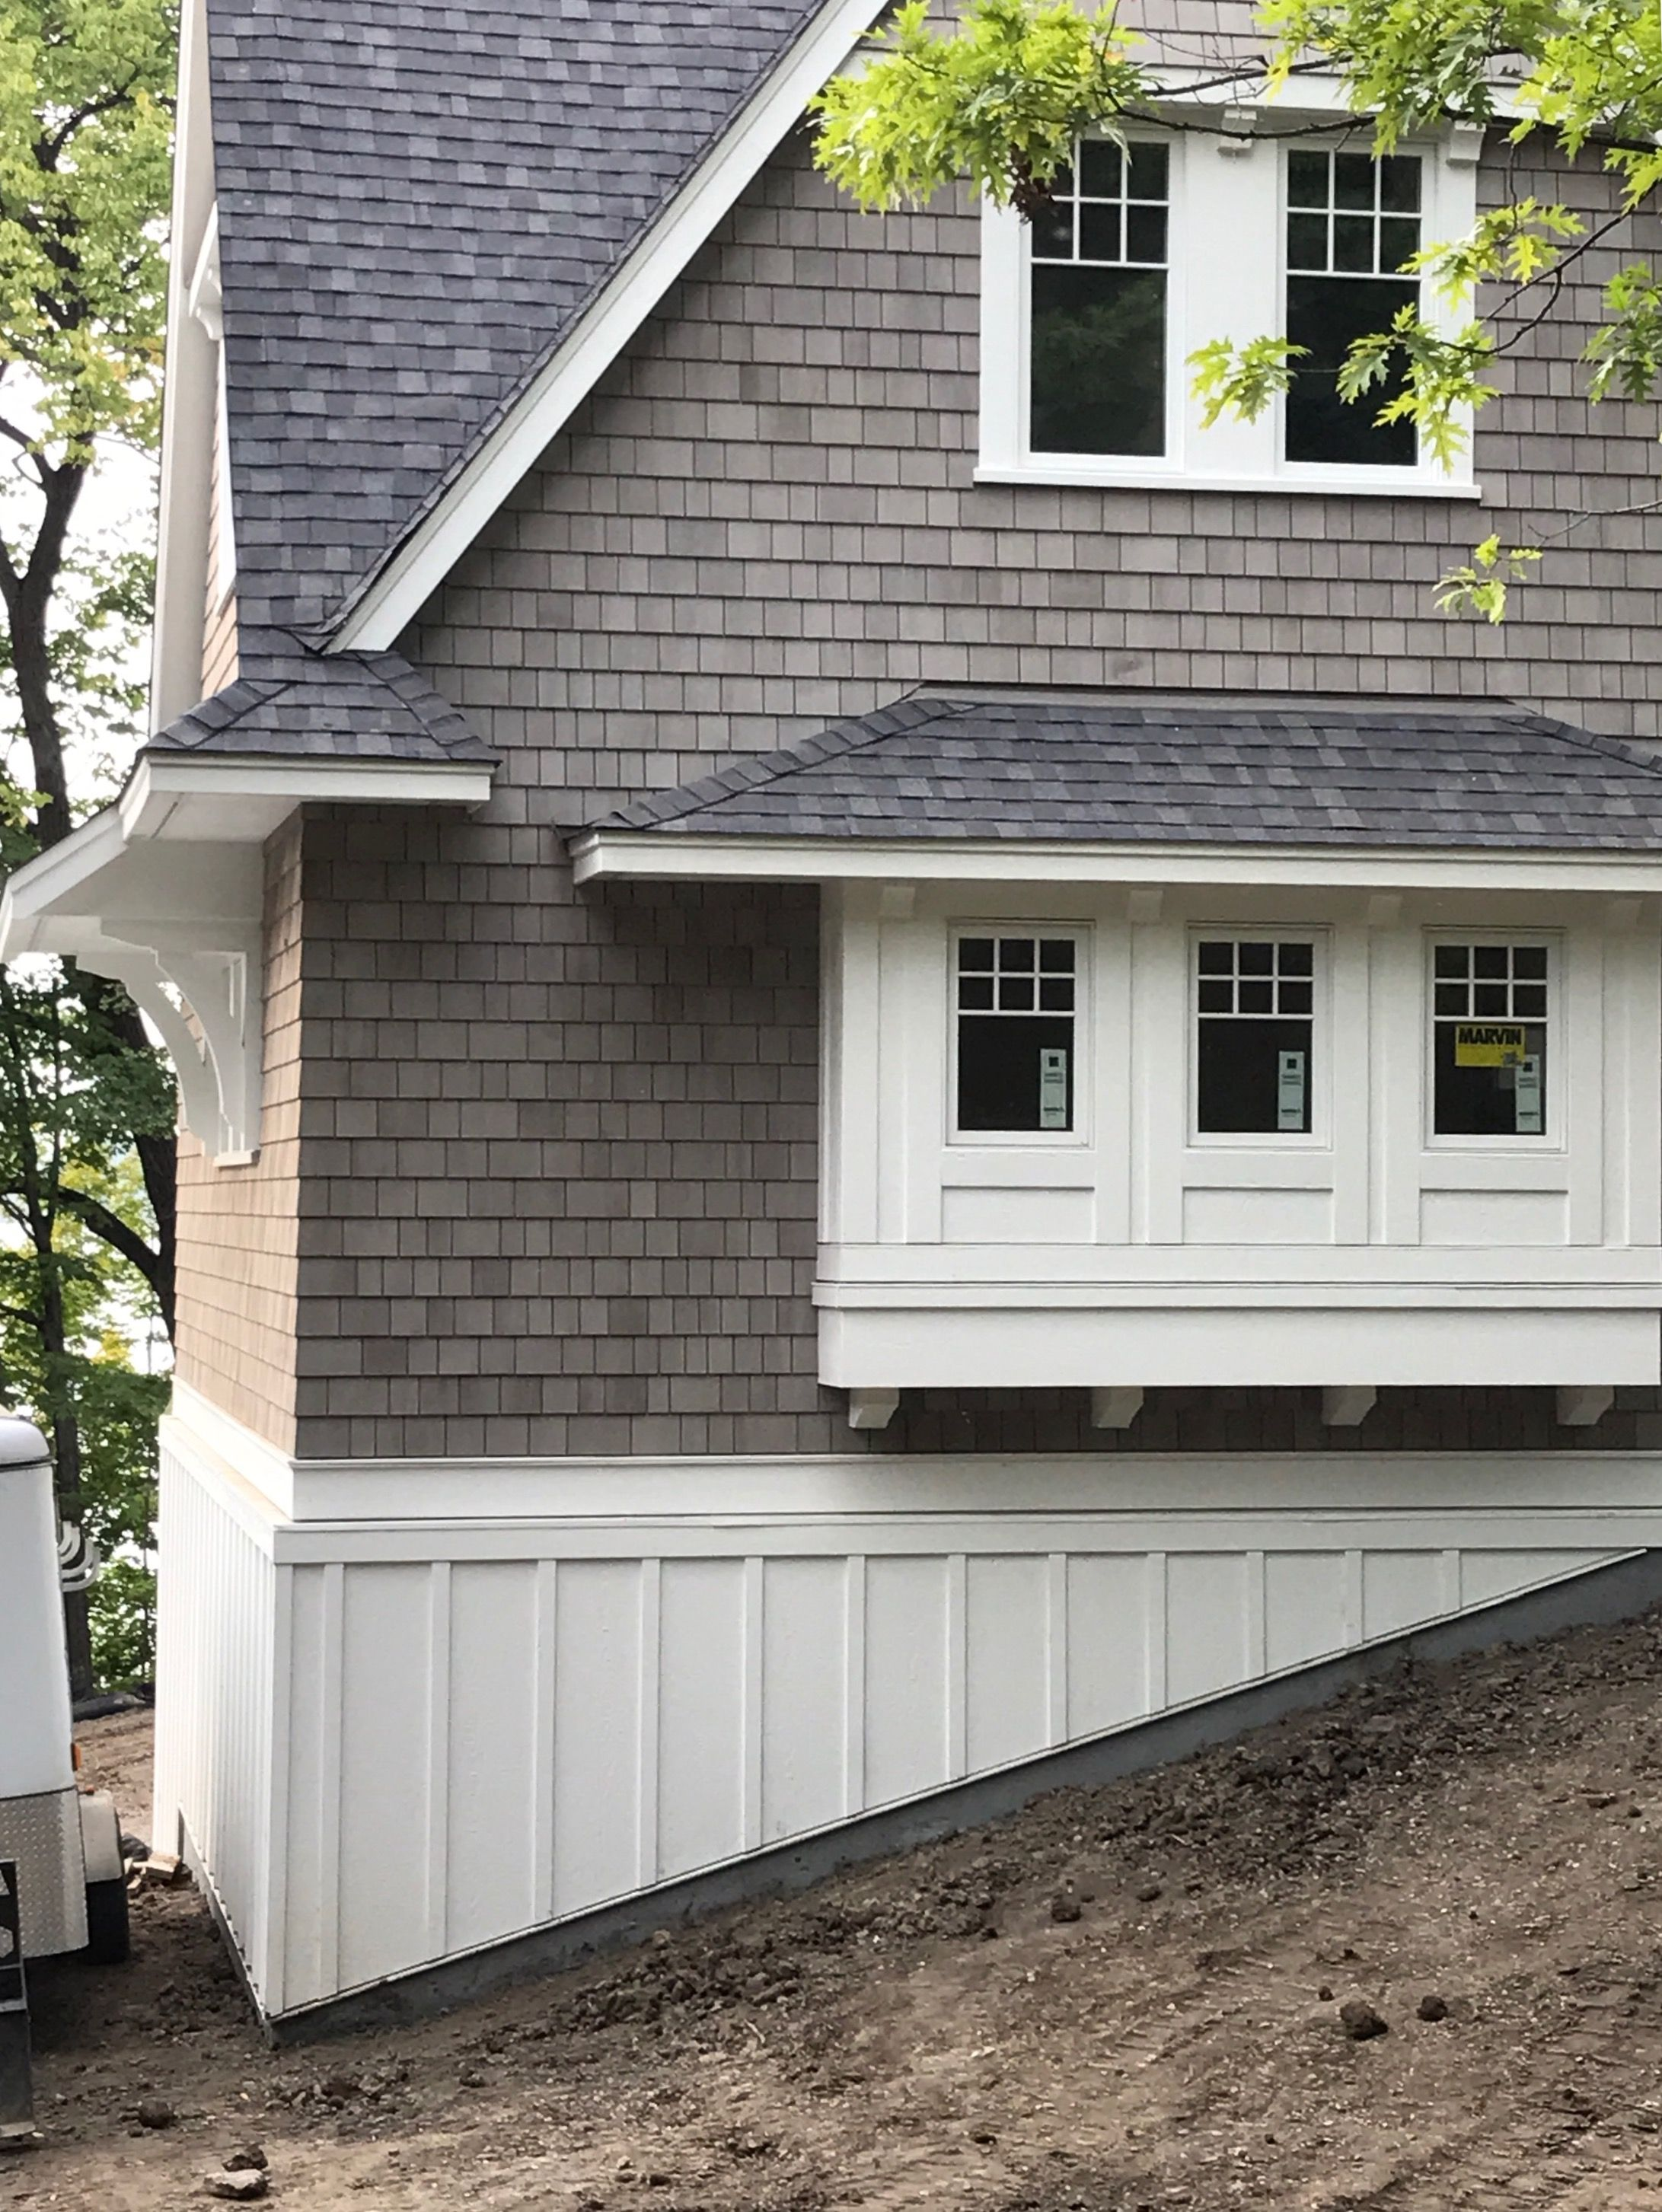 Wood Shakes Dipped In Cabot Fieldstone Semi Solid Stain House Paint Exterior Craftsman Home Exterior Shingle Exterior